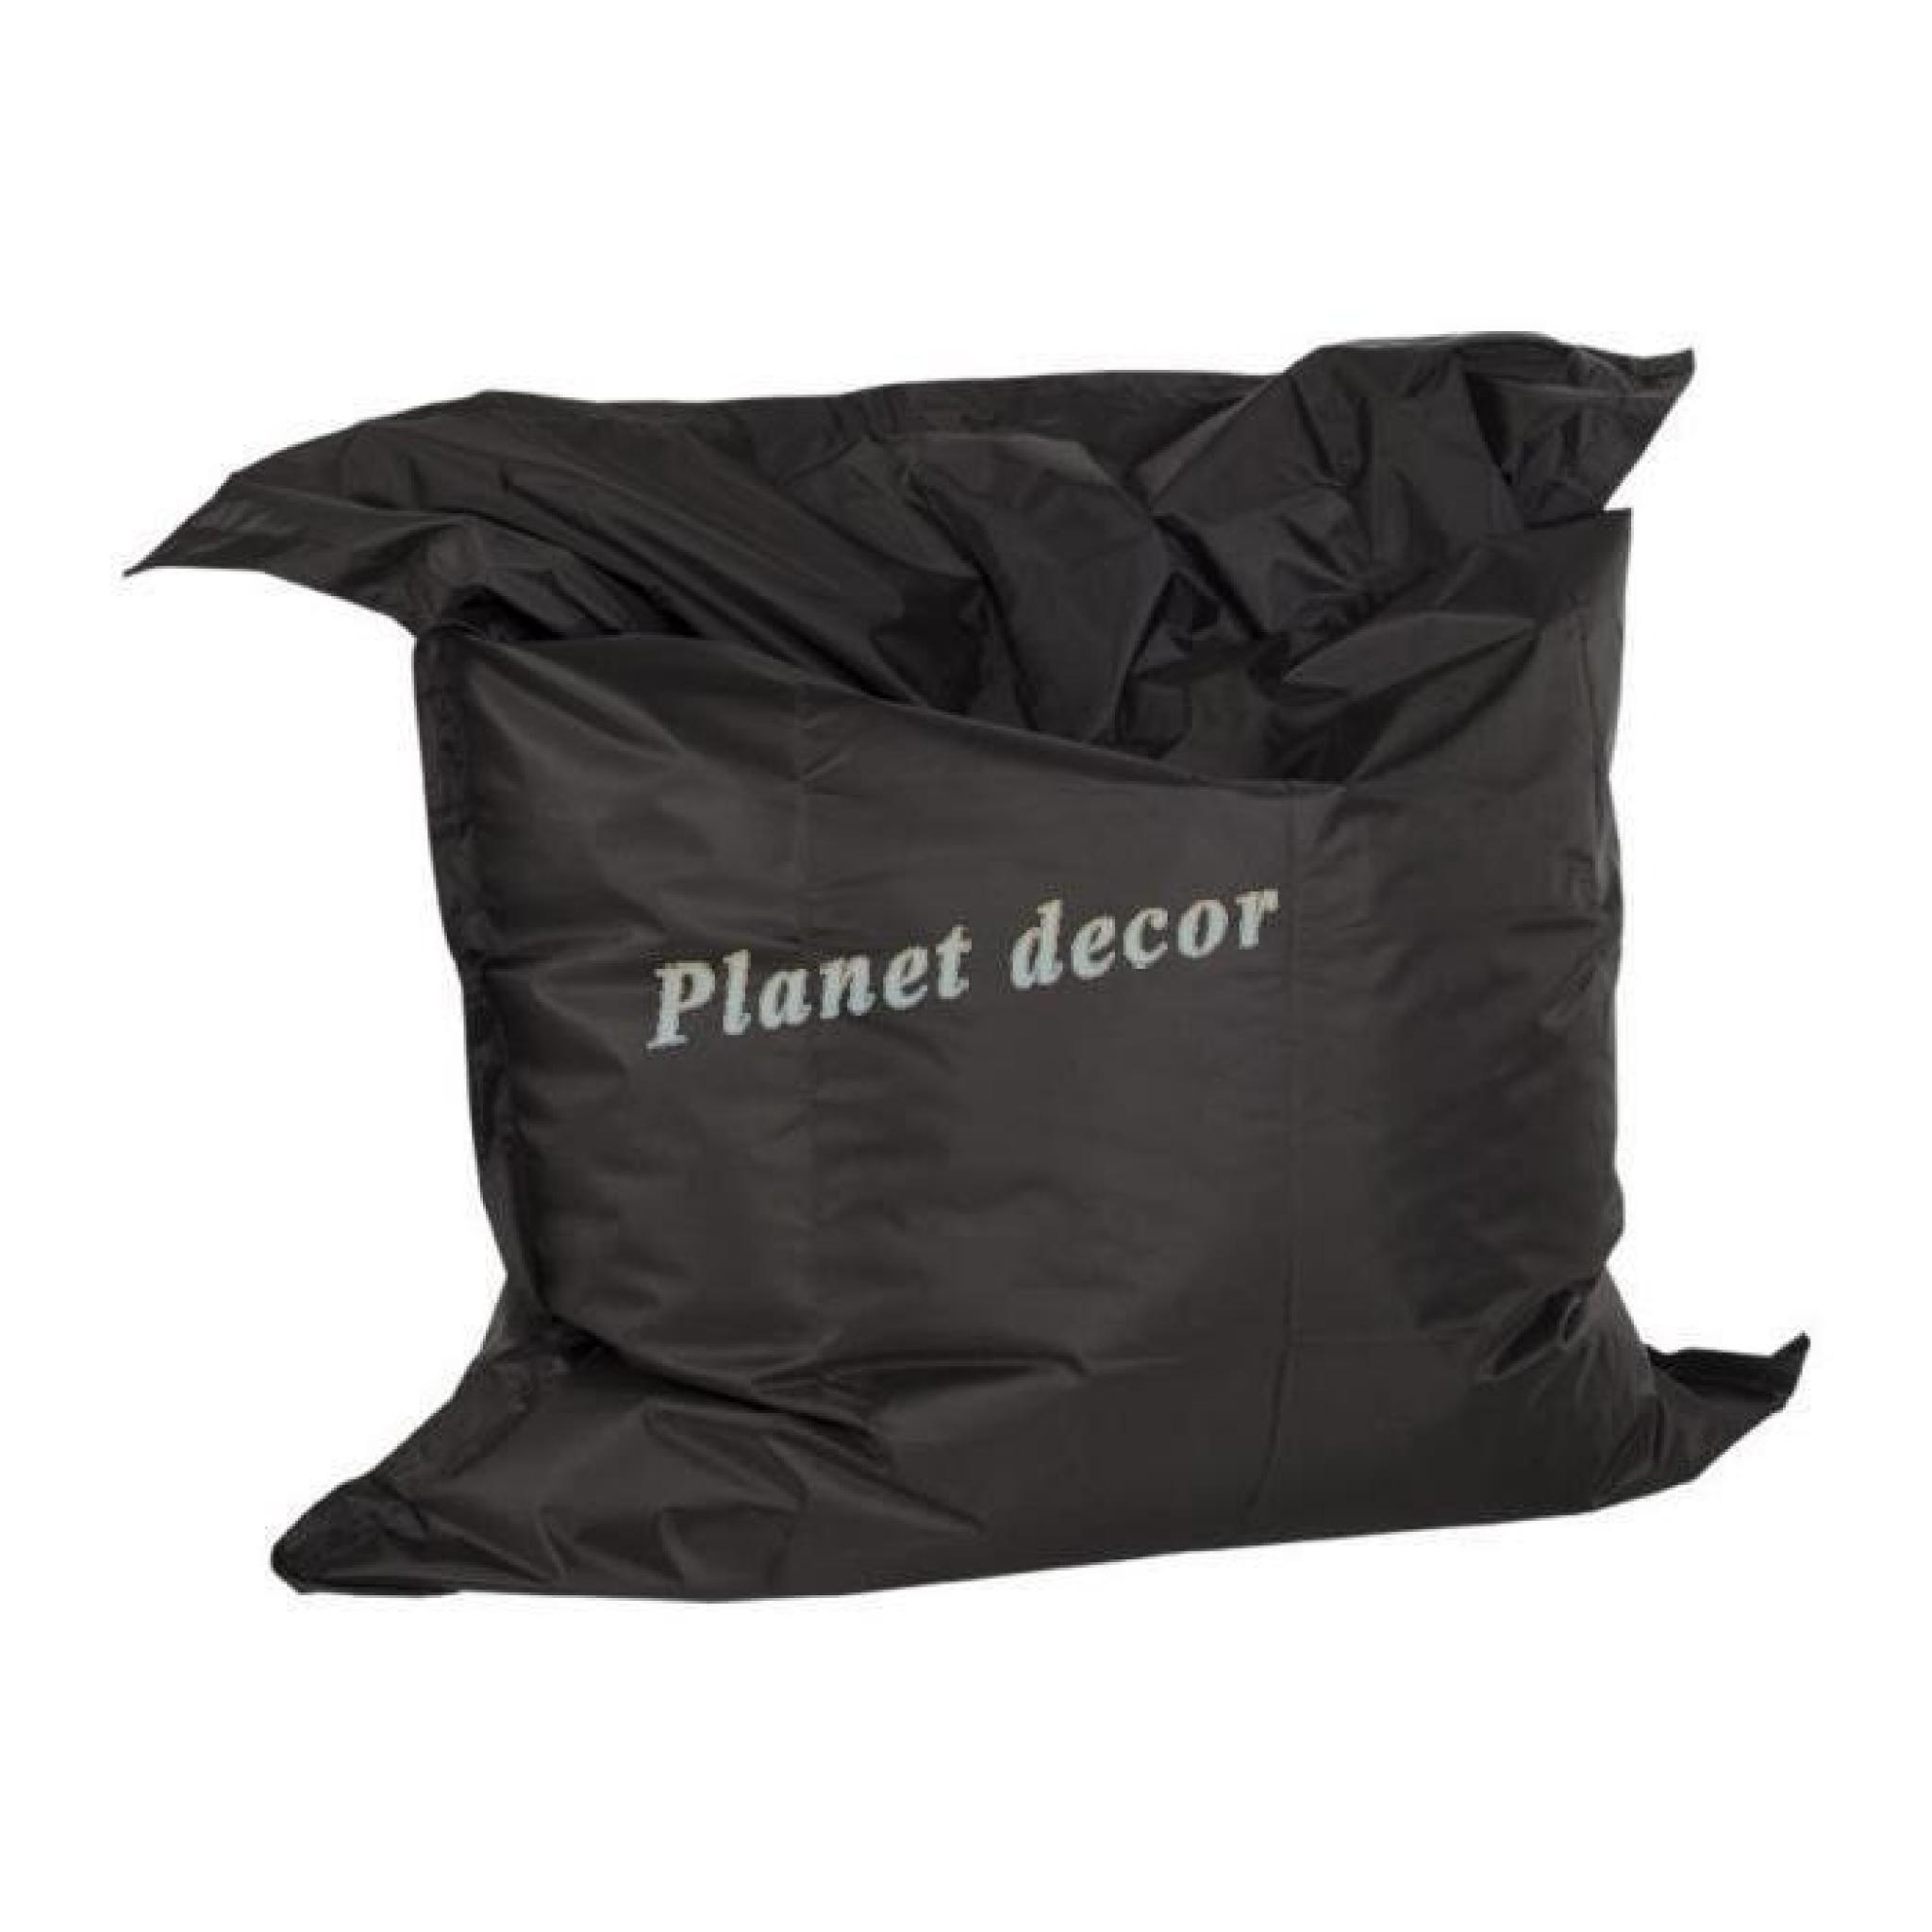 pouf g ant 39 lazy 39 noir achat vente pouf exterieur pas cher. Black Bedroom Furniture Sets. Home Design Ideas